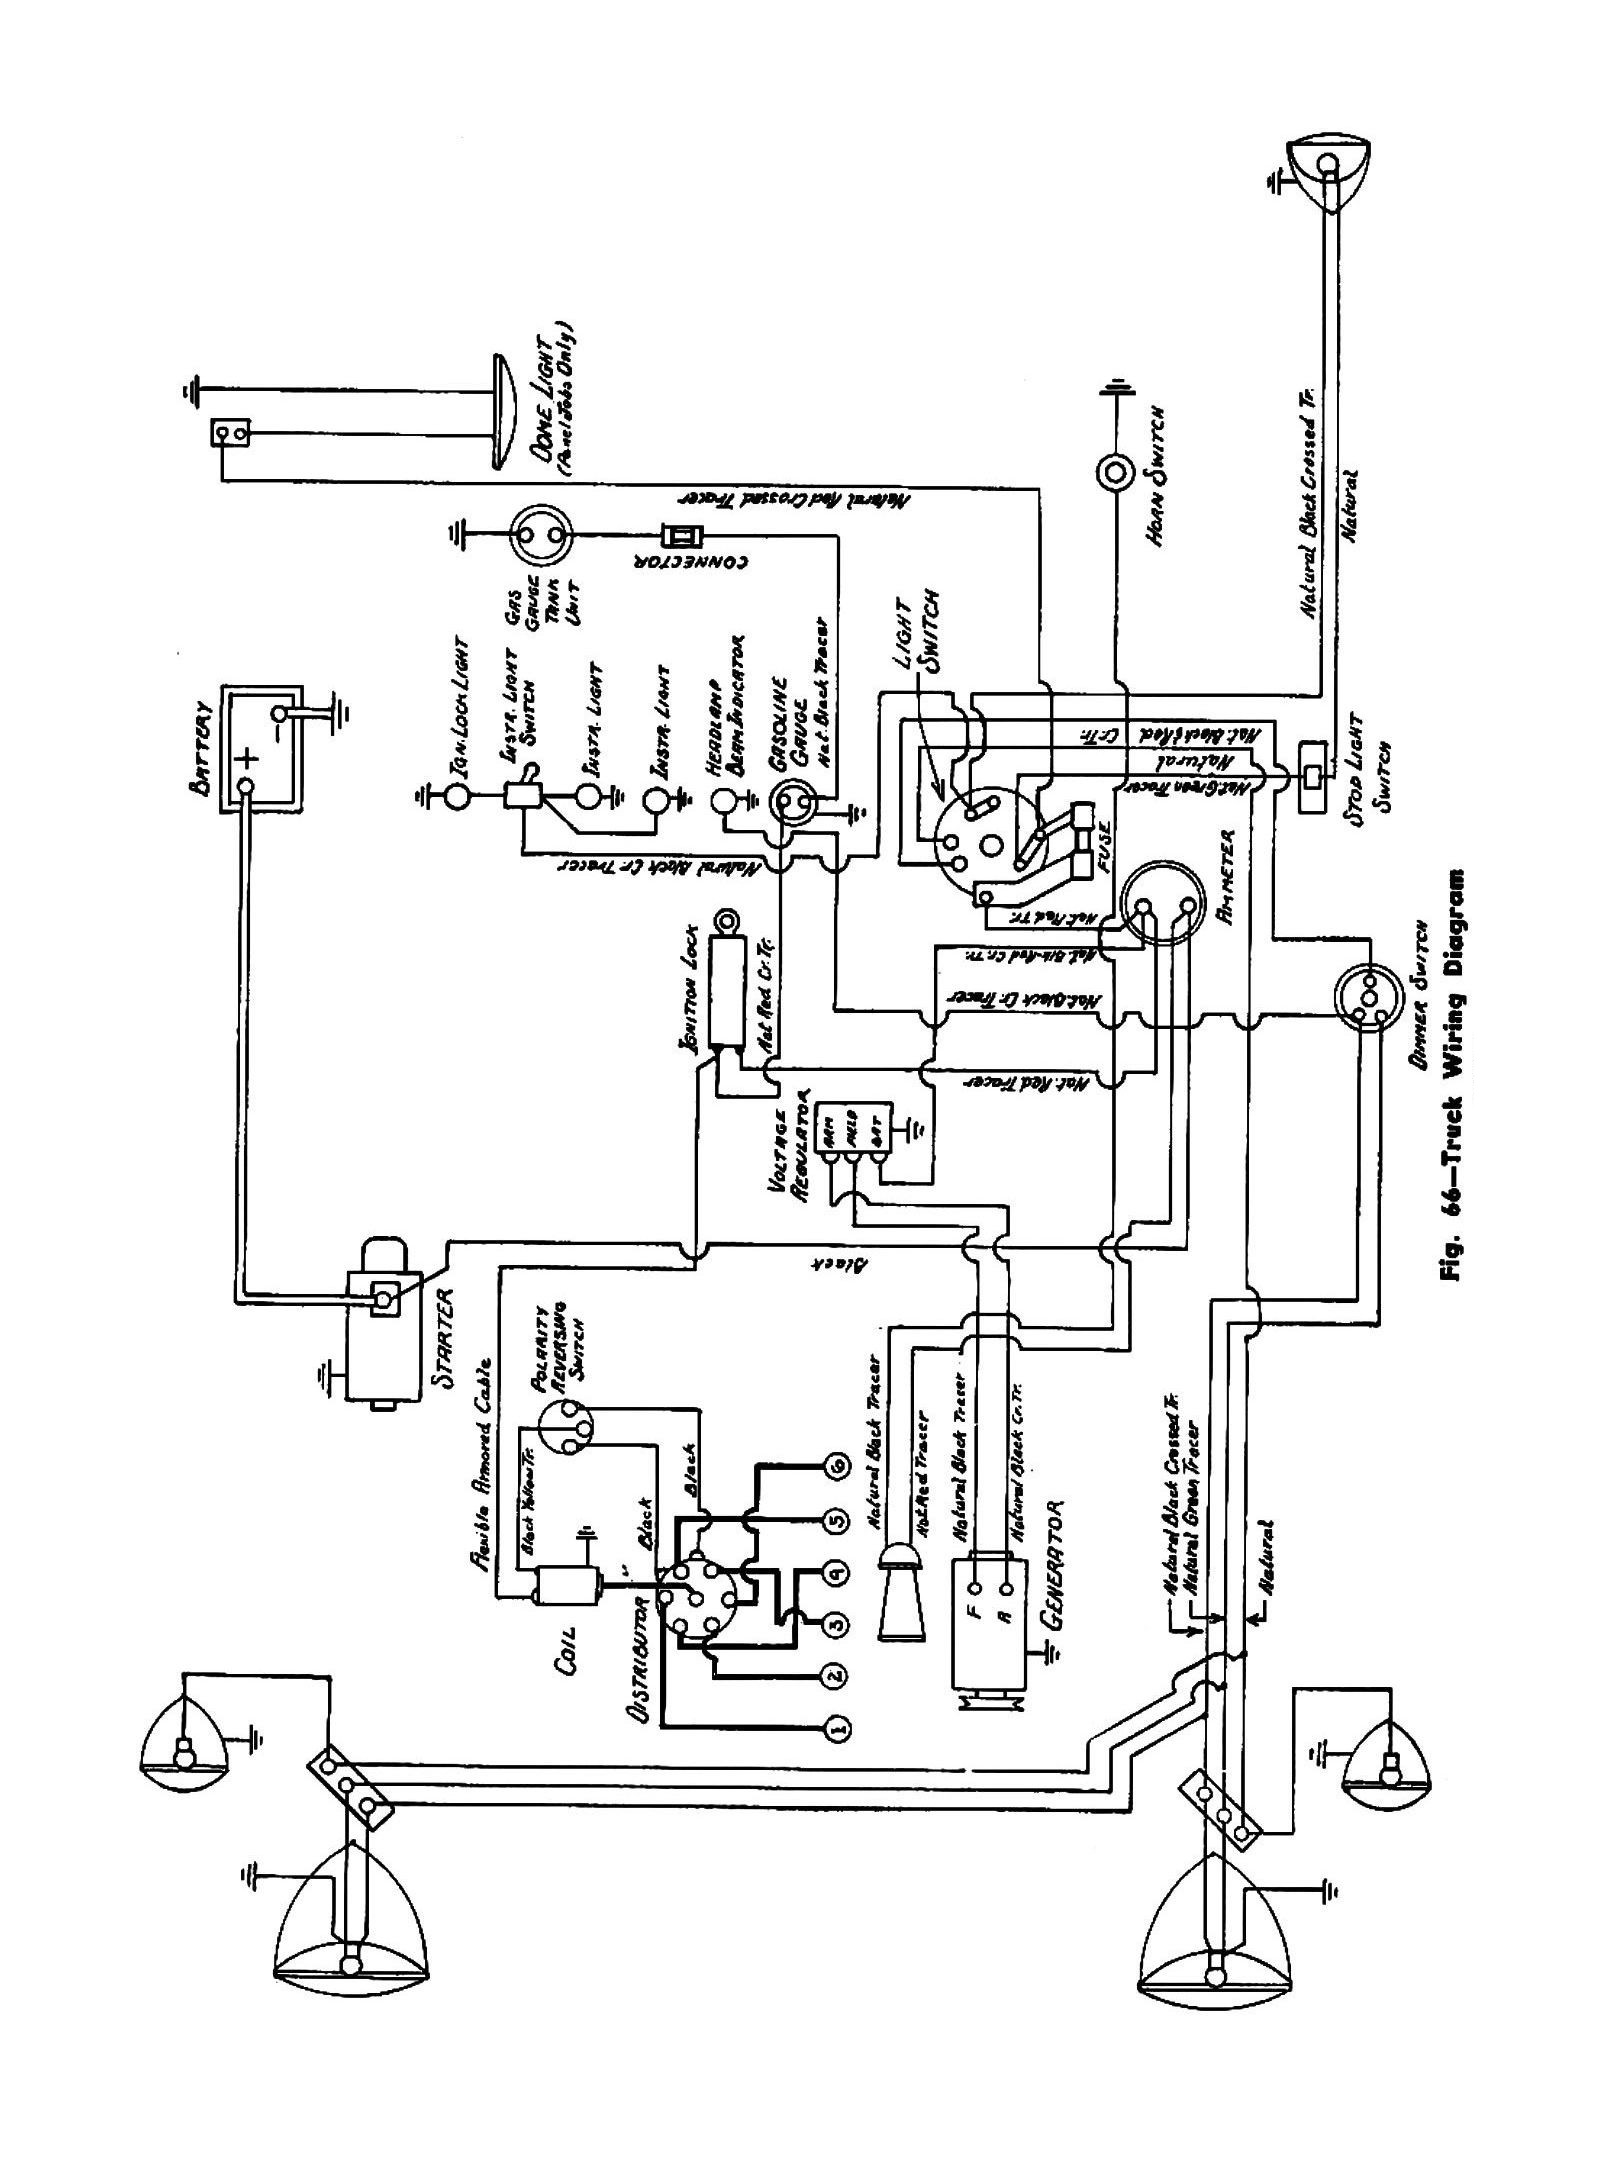 45truck 1968 chevy pickup wiring diagram wiring diagram simonand wiring diagrams for ford trucks at virtualis.co